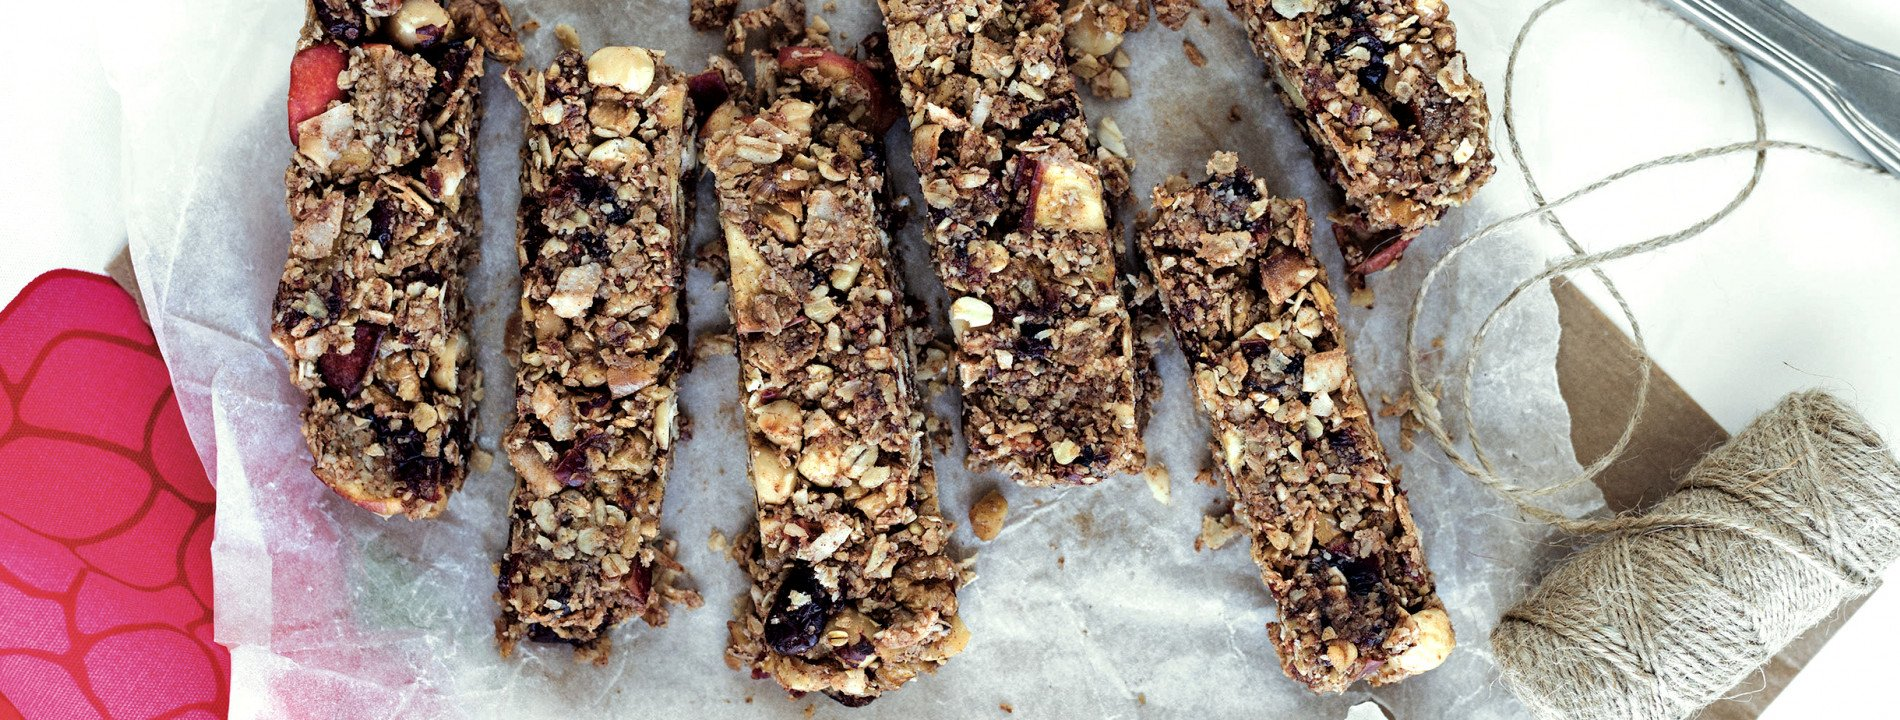 Cereal and Apple Bars